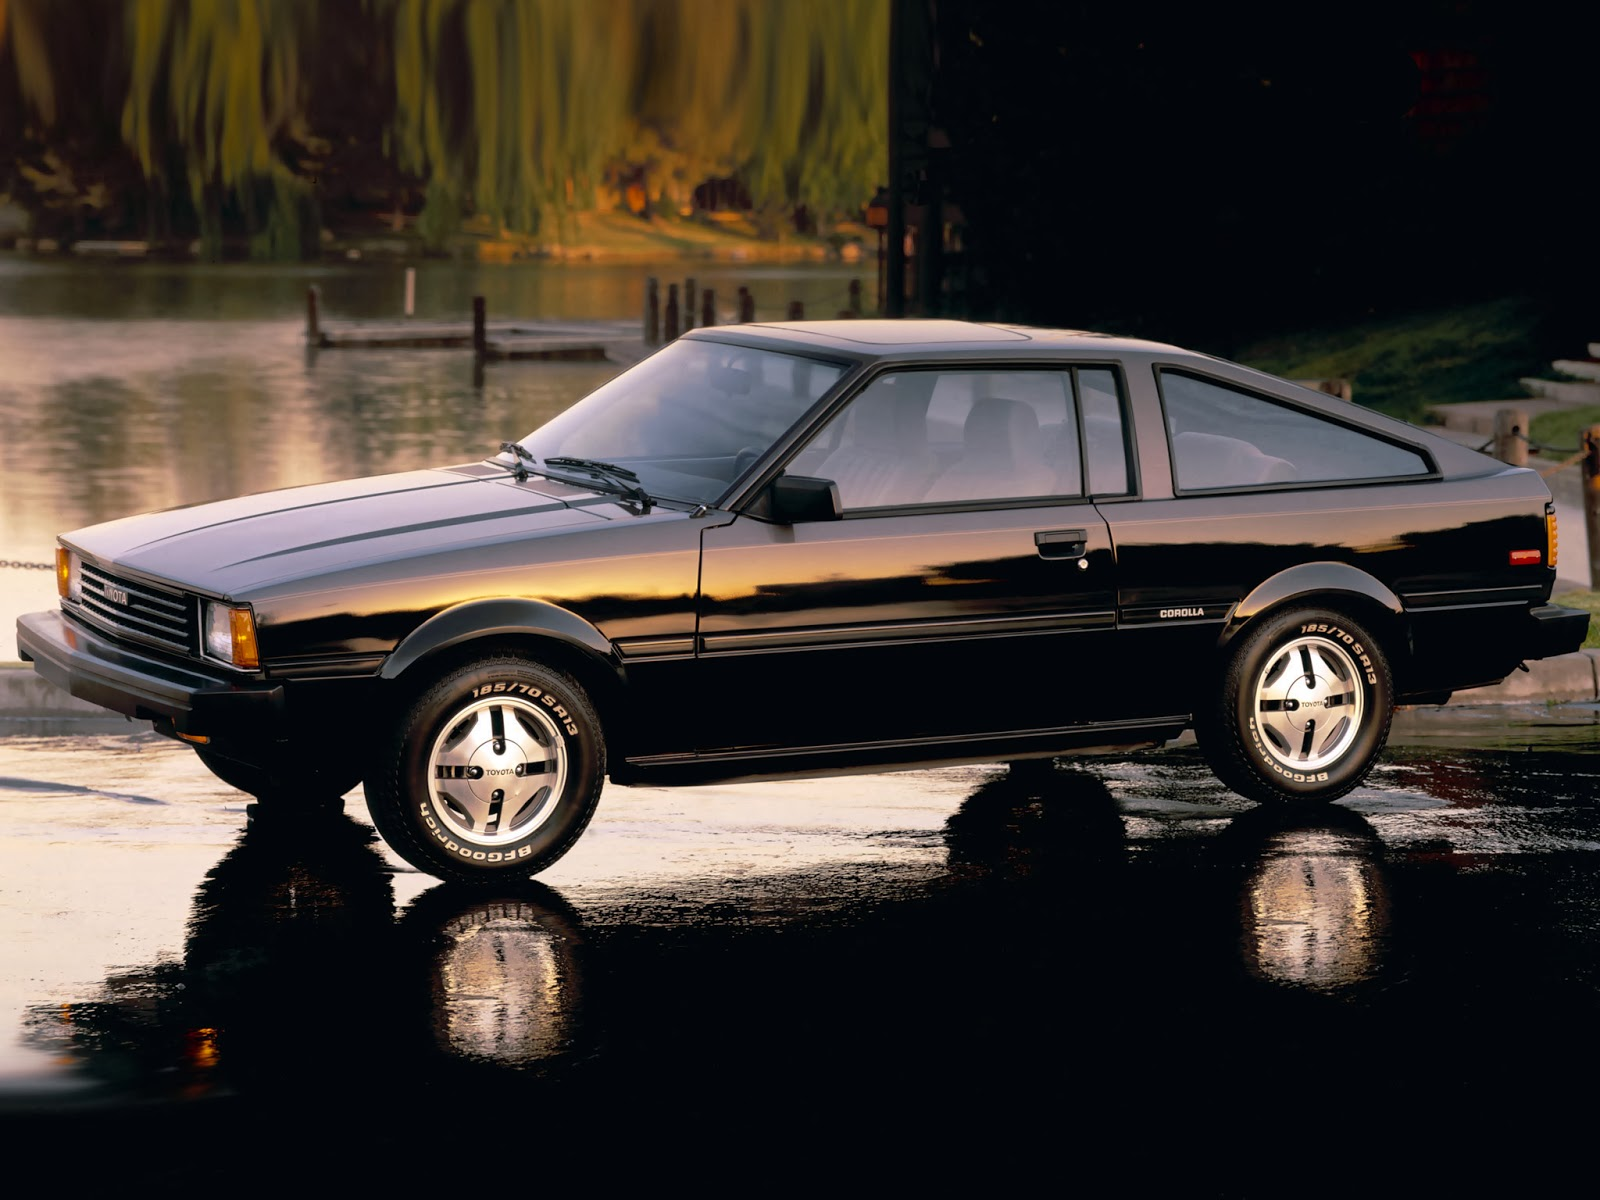 Looking at vintage toyota models never gets old it s amazing to look back and remember the rich incredible history of this iconic automobile company